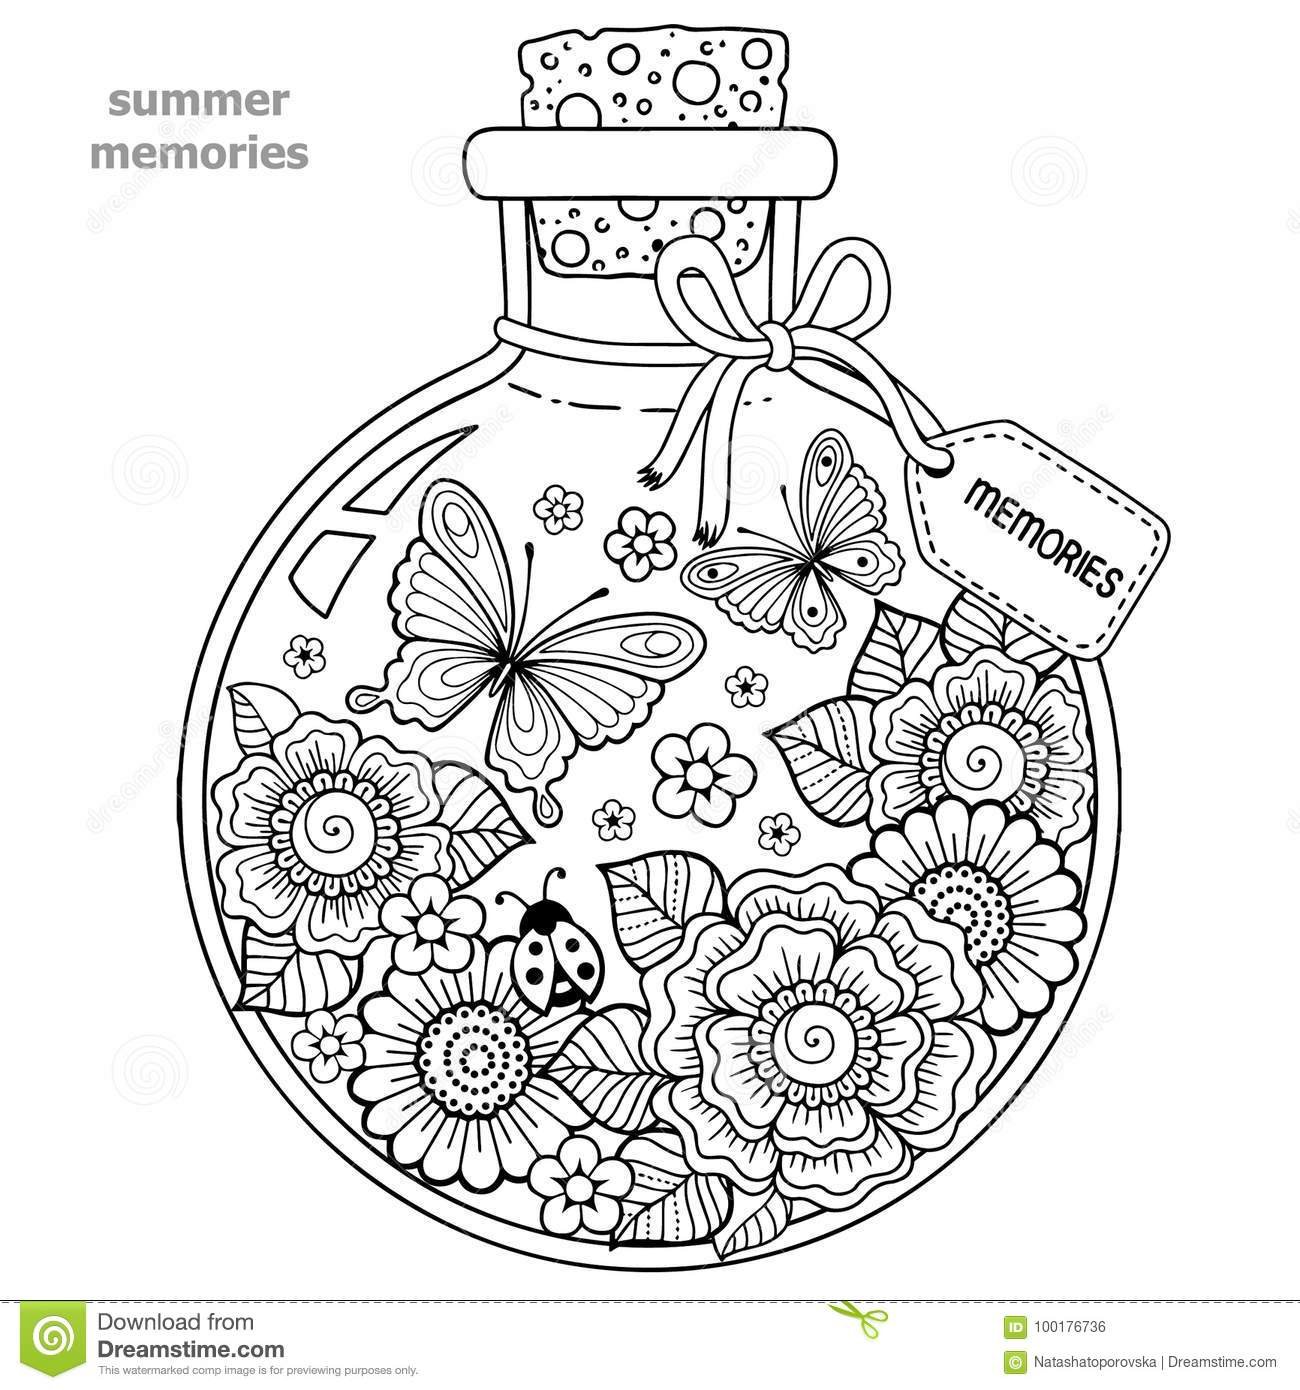 Coloring Book For Adults. A Glass Vessel With Memories Of Summer. A ...